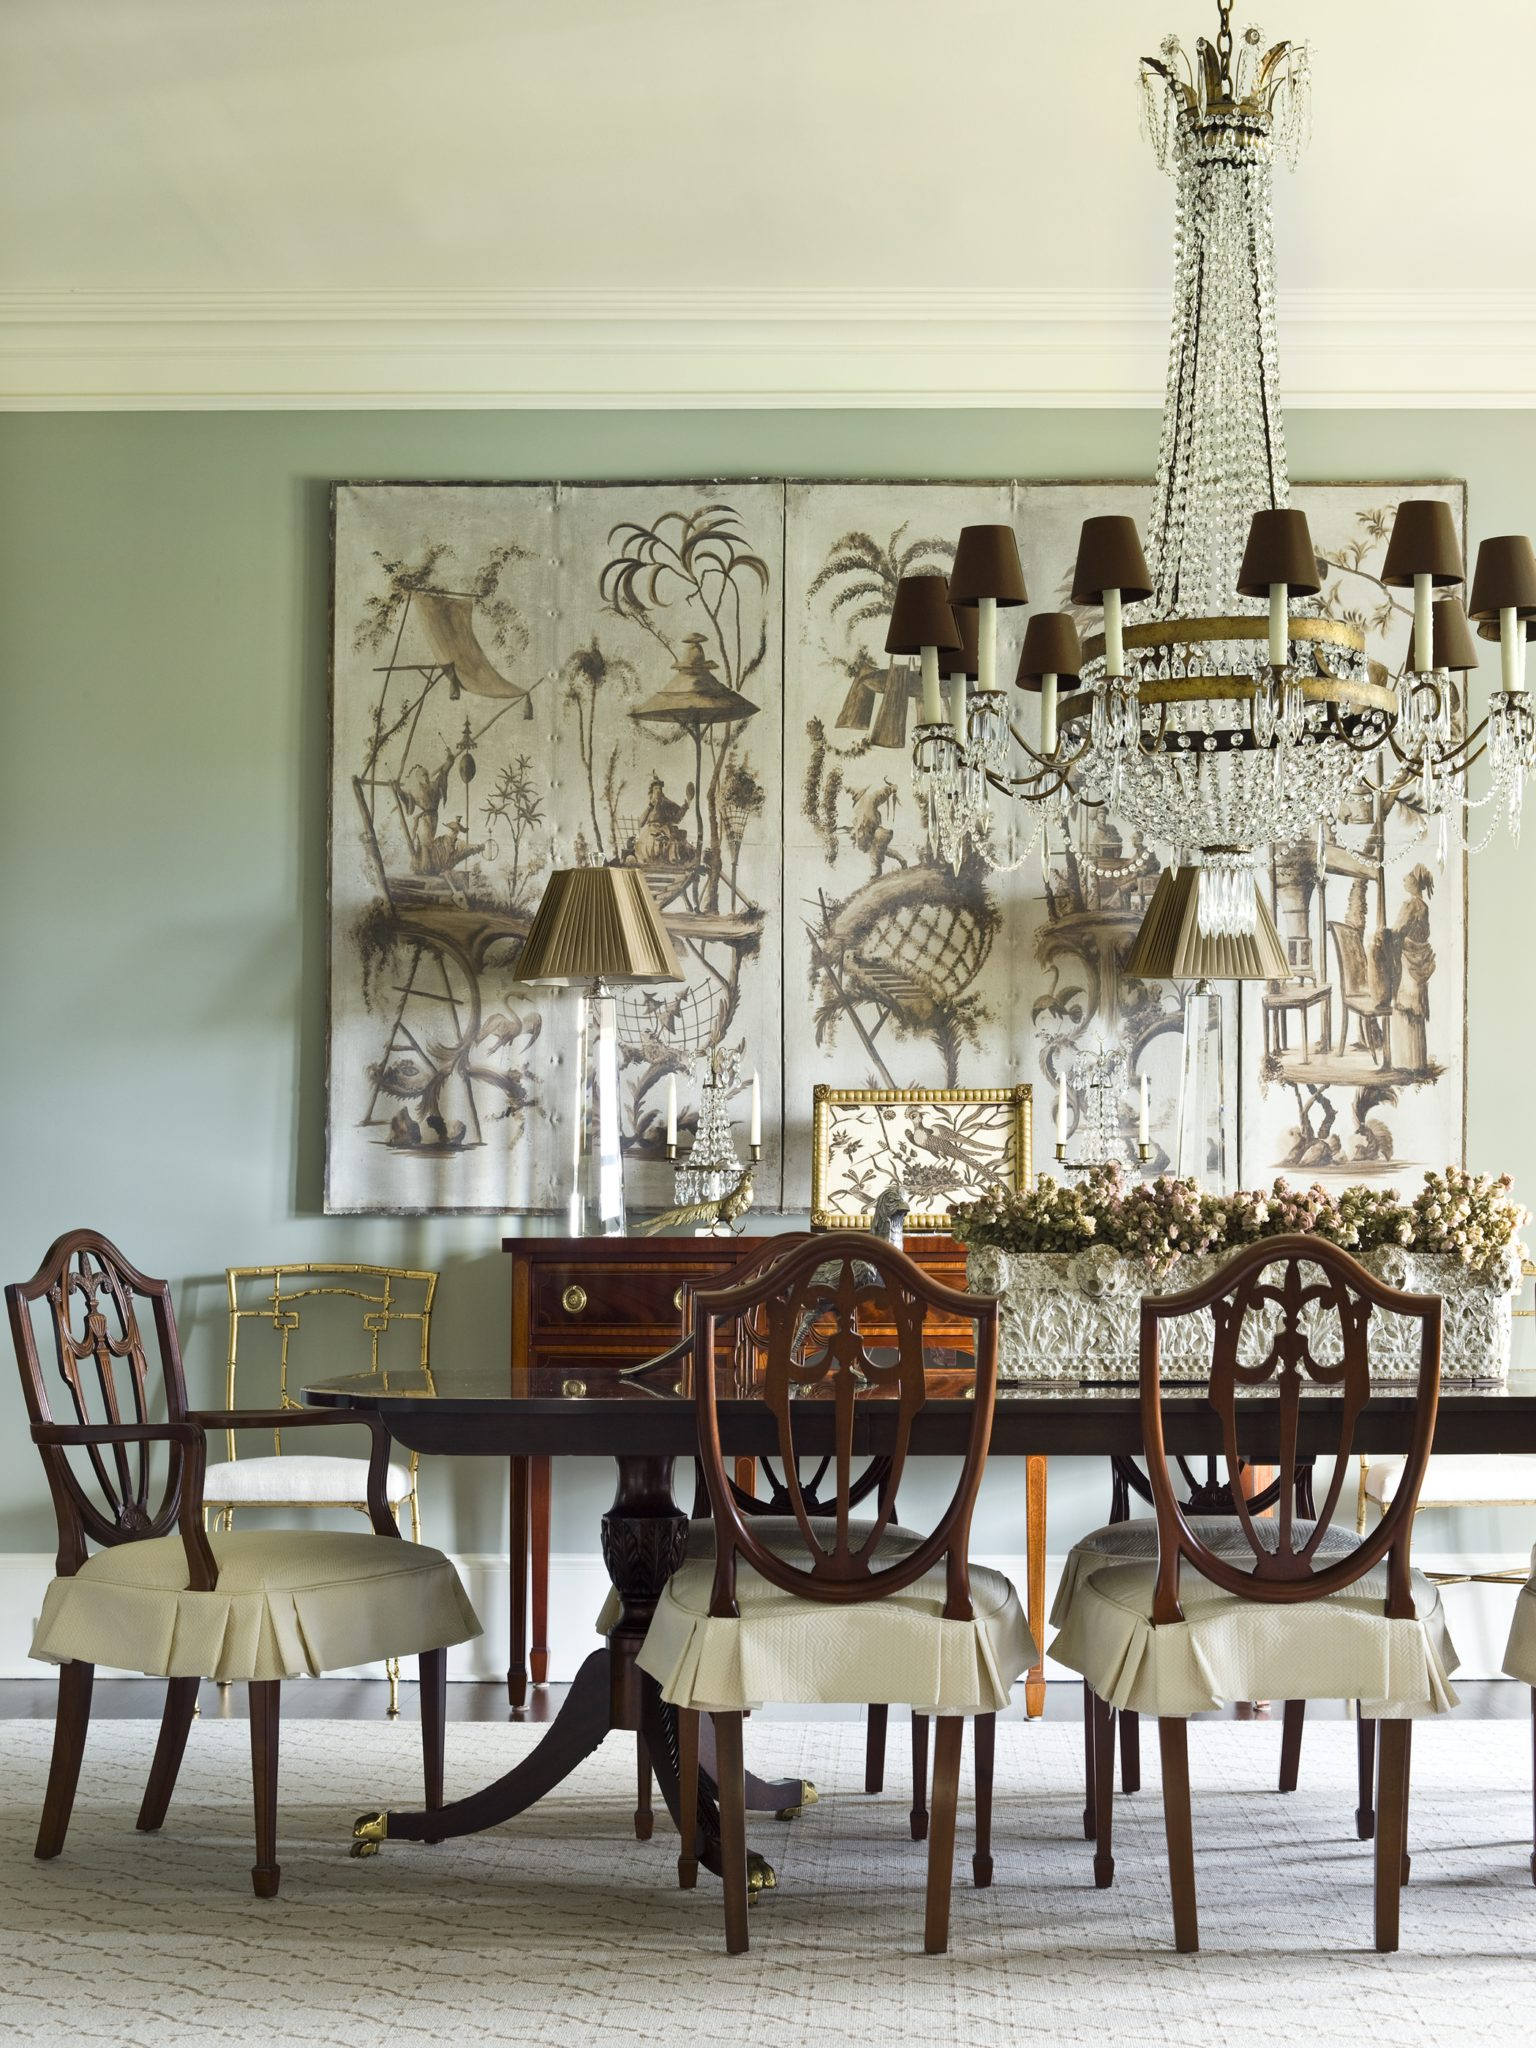 Dining room by Amy Morris